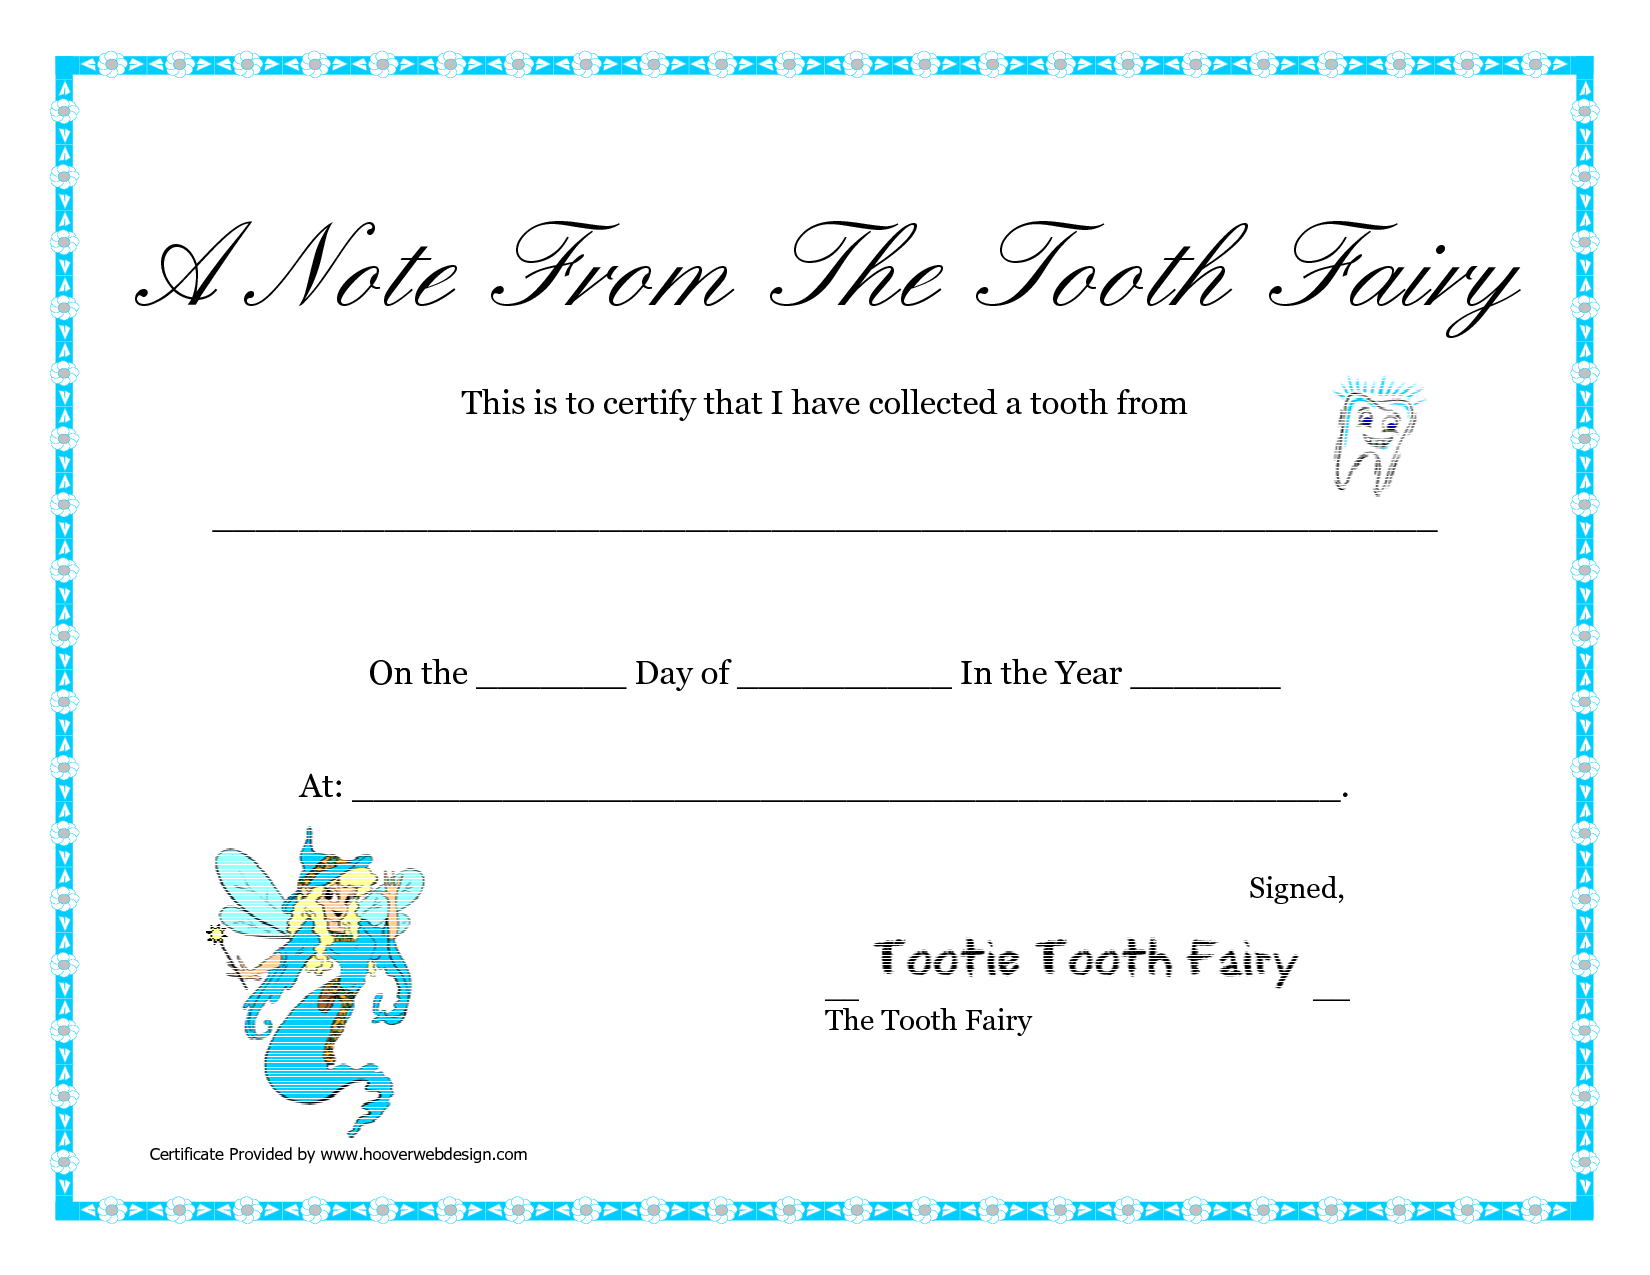 Free Printable Tooth Fairy Letter | Tooth Fairy Certificate - Free Printable Tooth Fairy Certificate